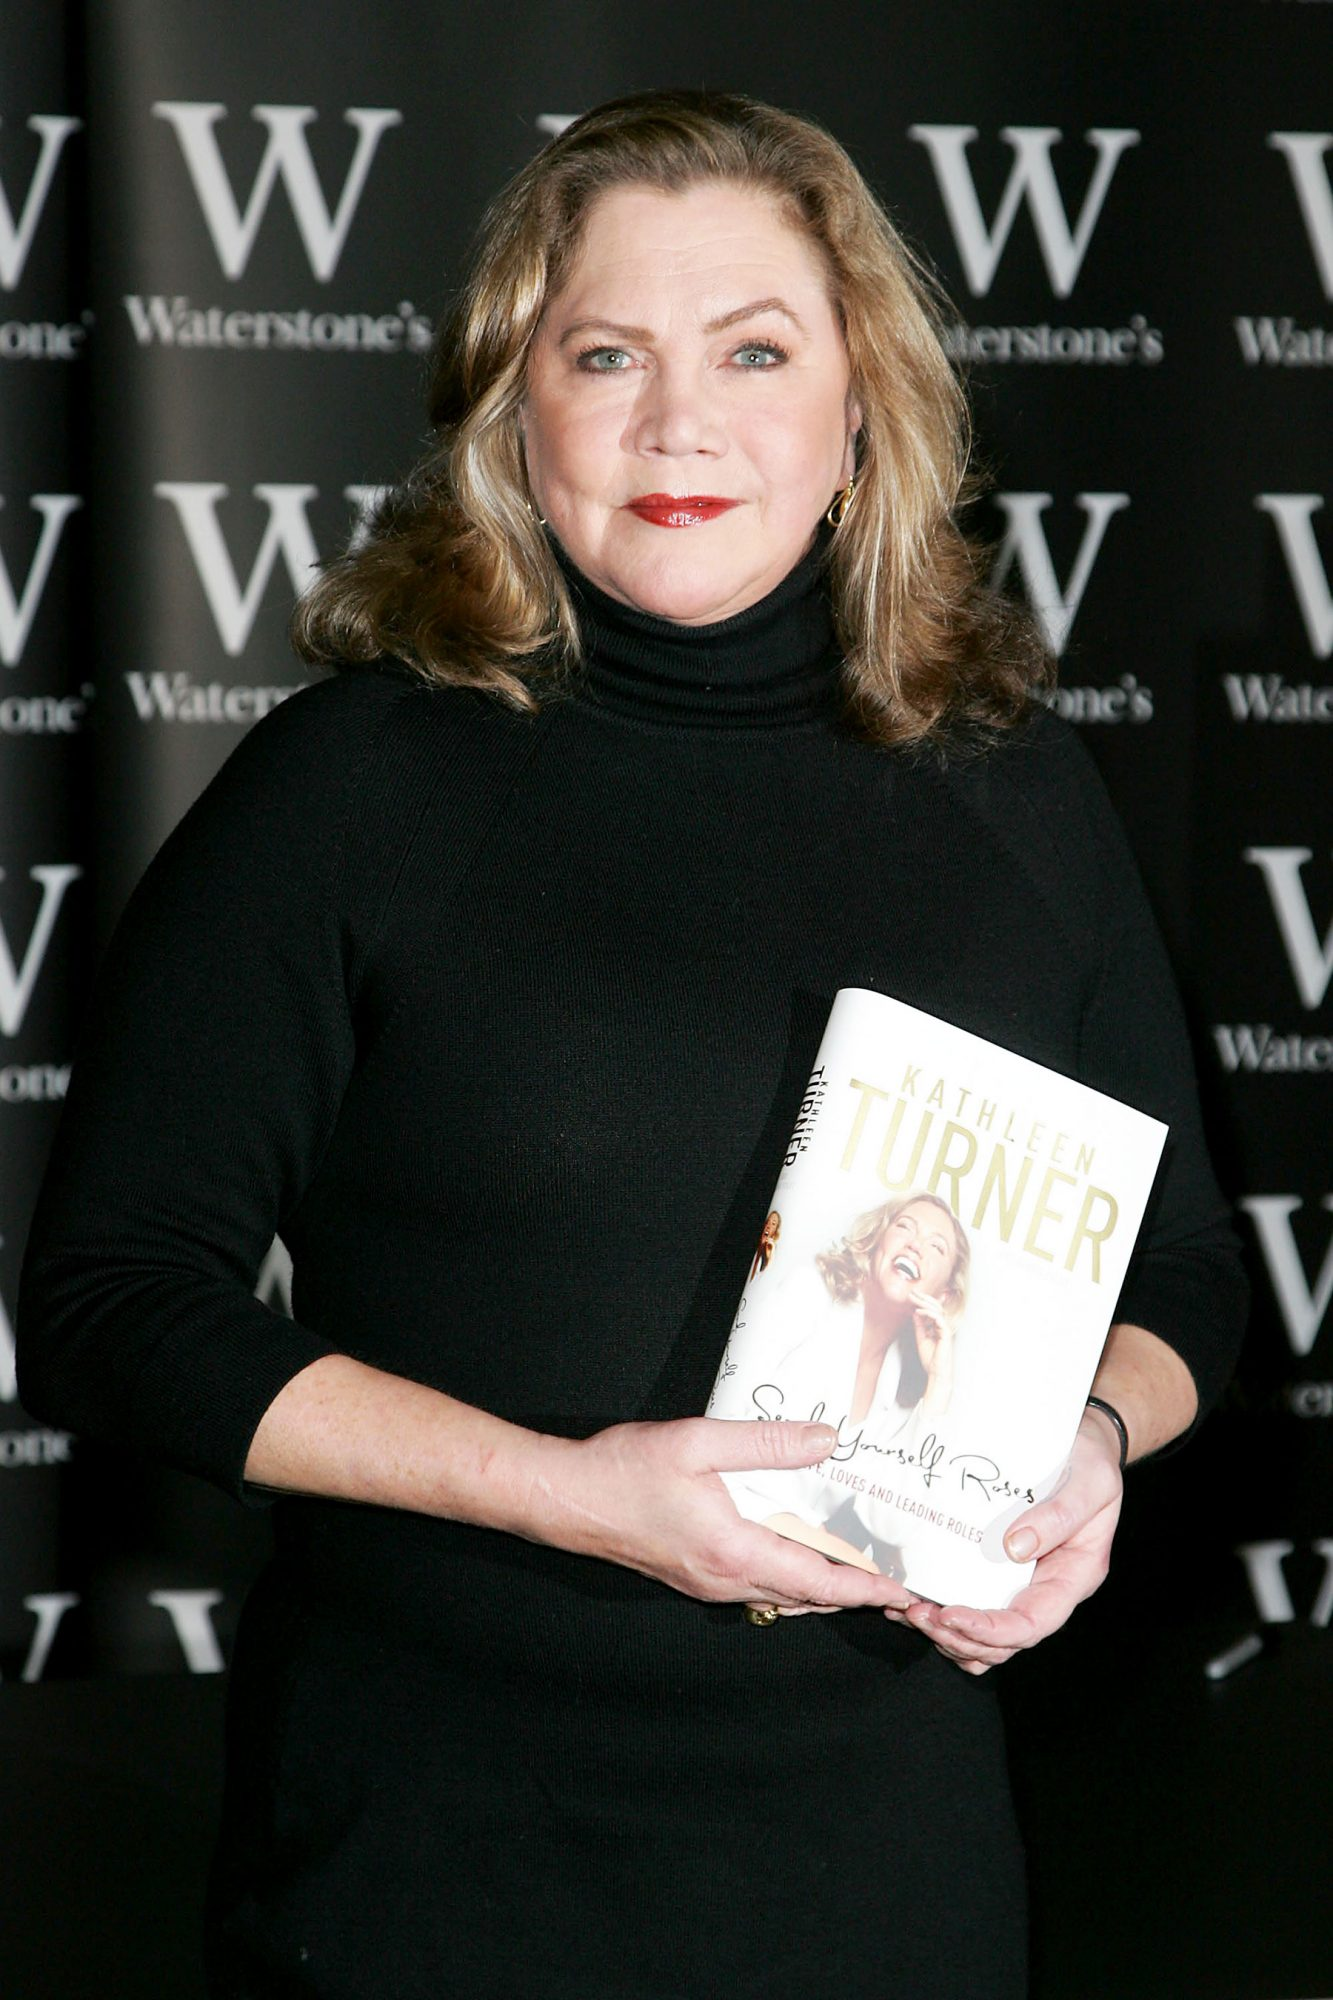 Kathleen Turner Signs Copies of Her Autobiography at Waterstone's in London